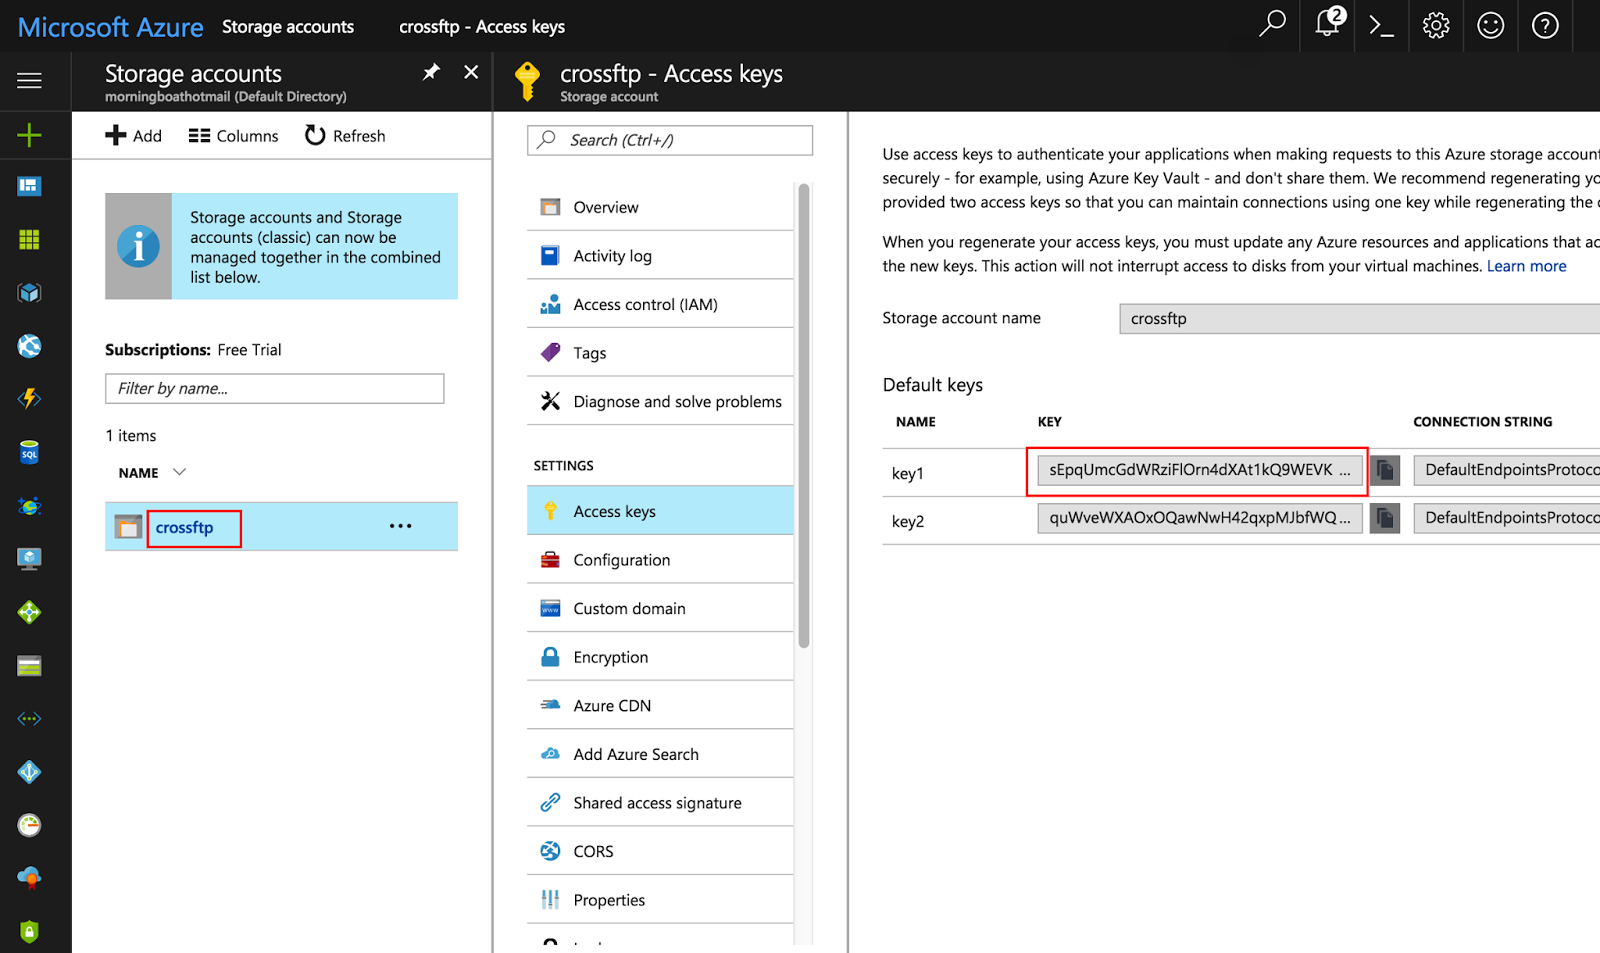 CrossFTP, FTP and Amazon S3 Client: Microsoft Azure Blob